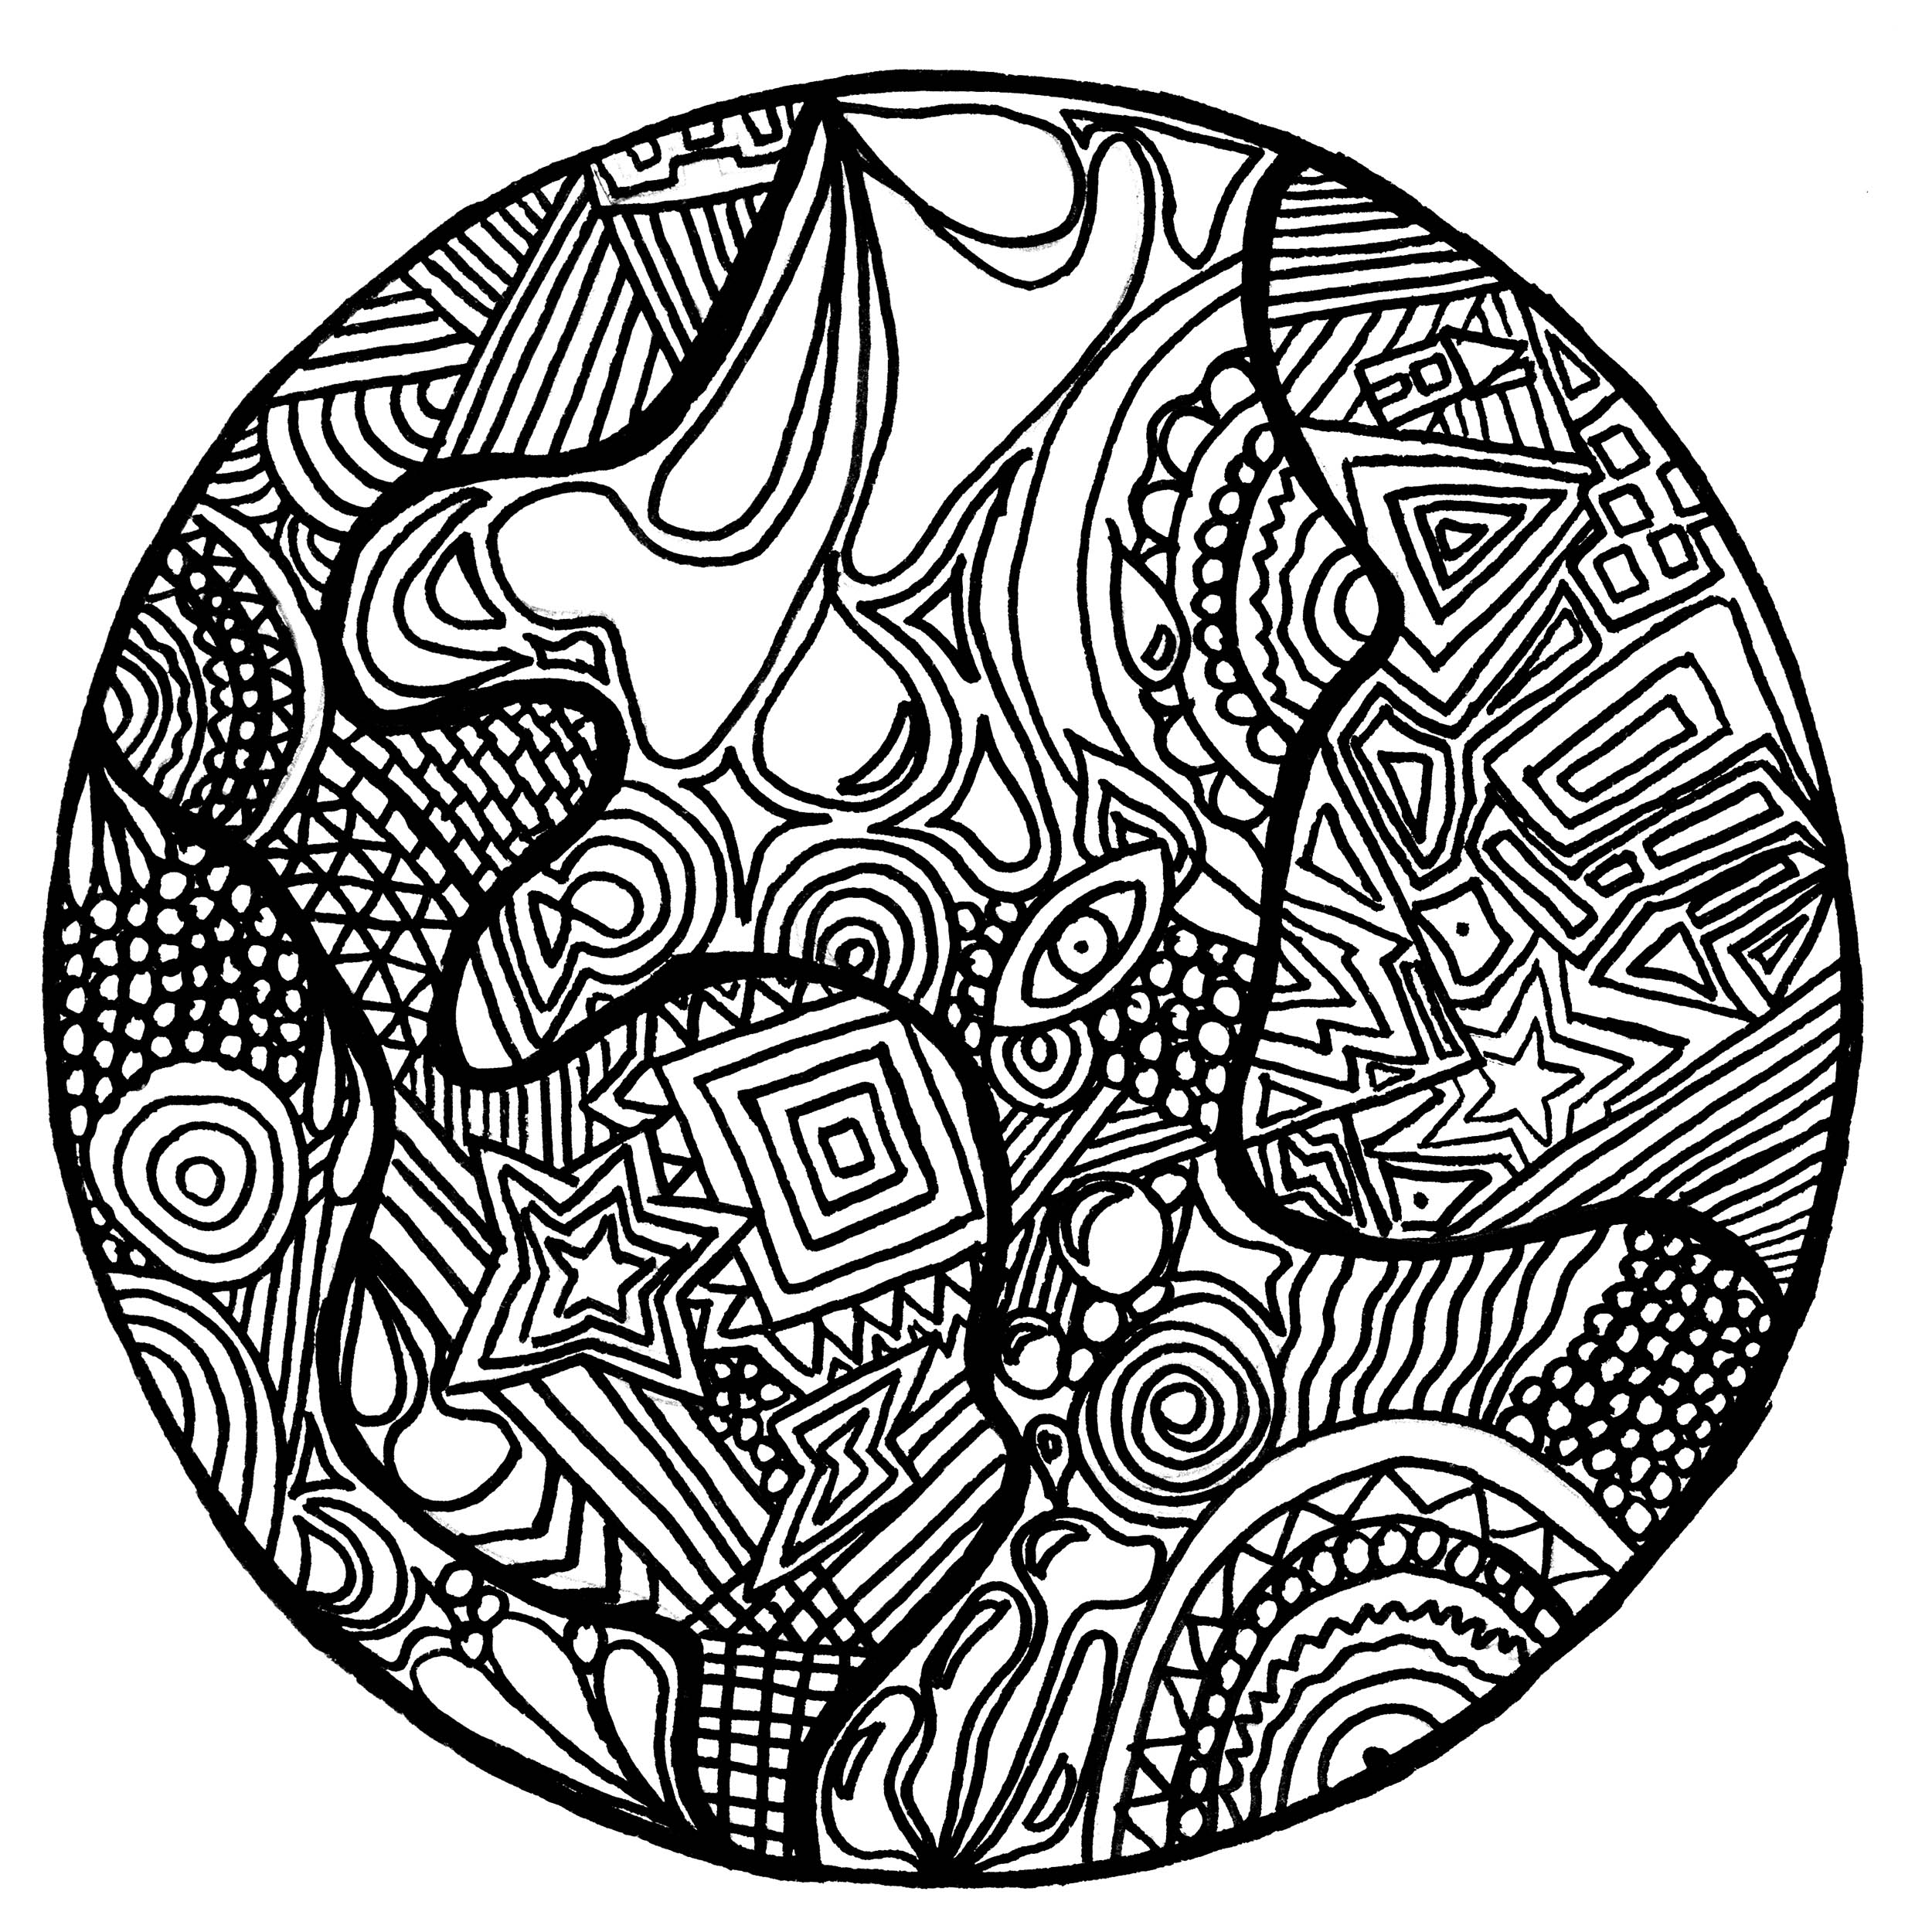 Incredible Zentangle coloring page to print and color for free